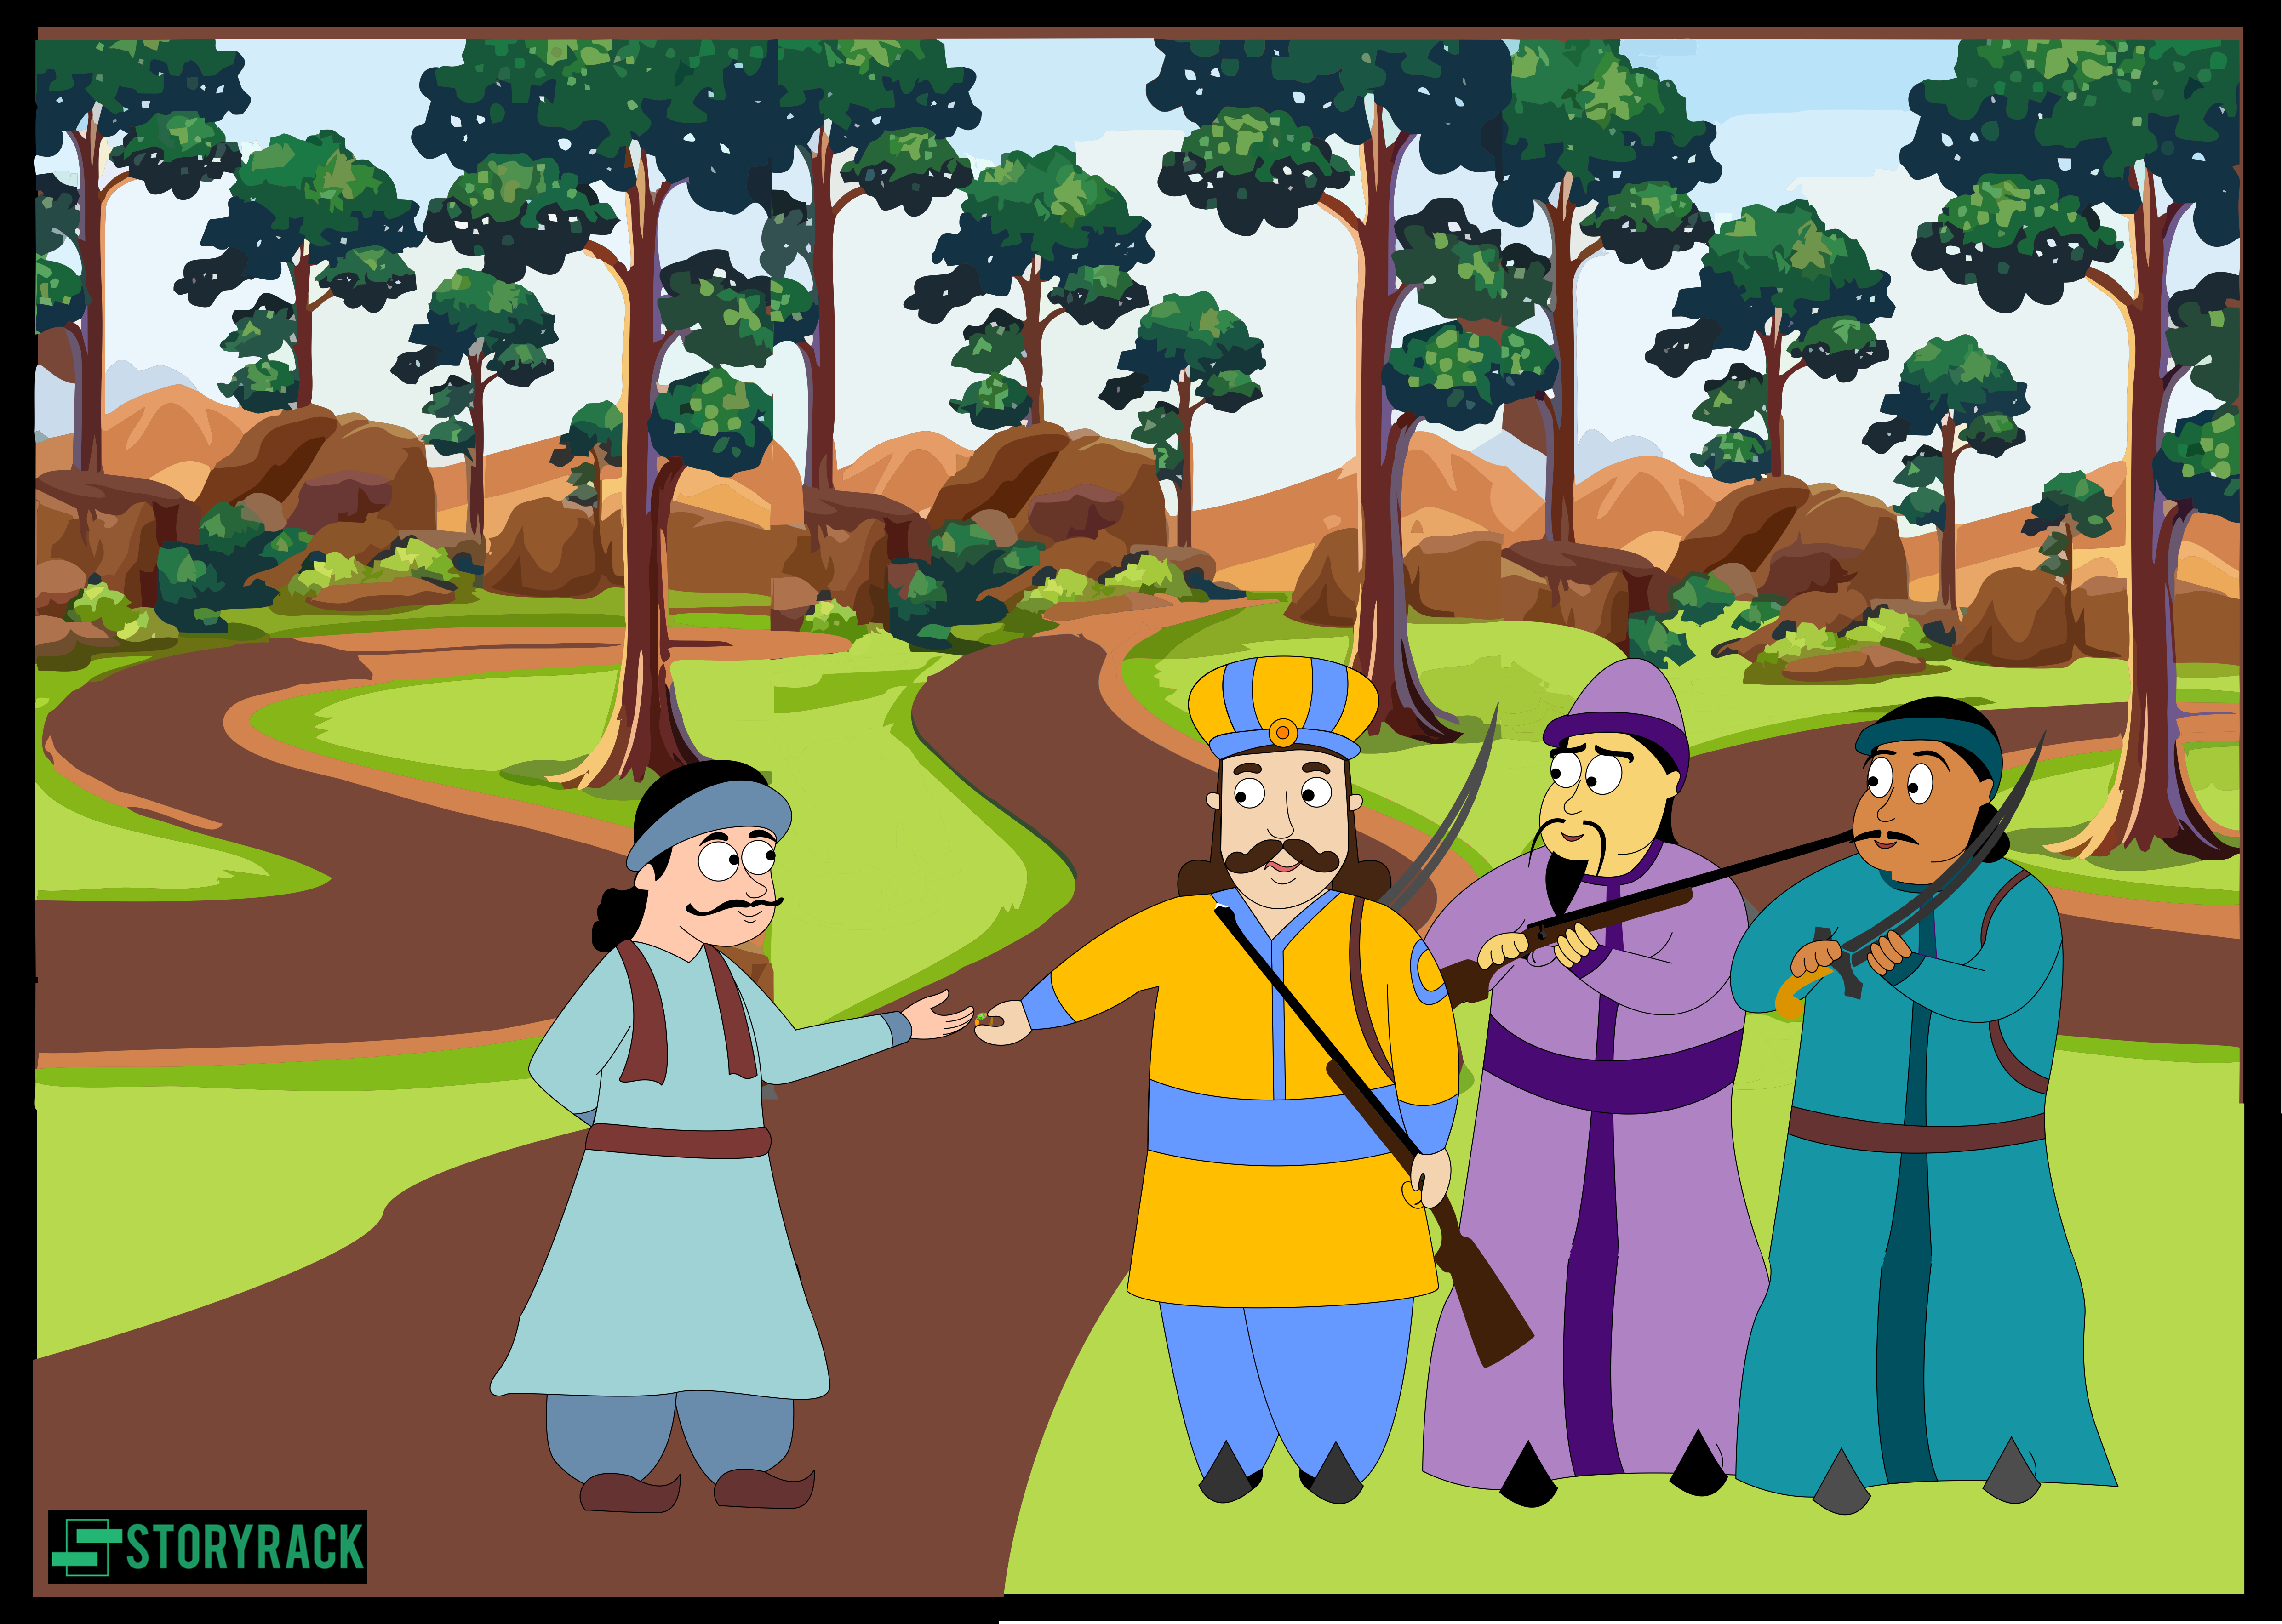 How Akbar and Birbal met